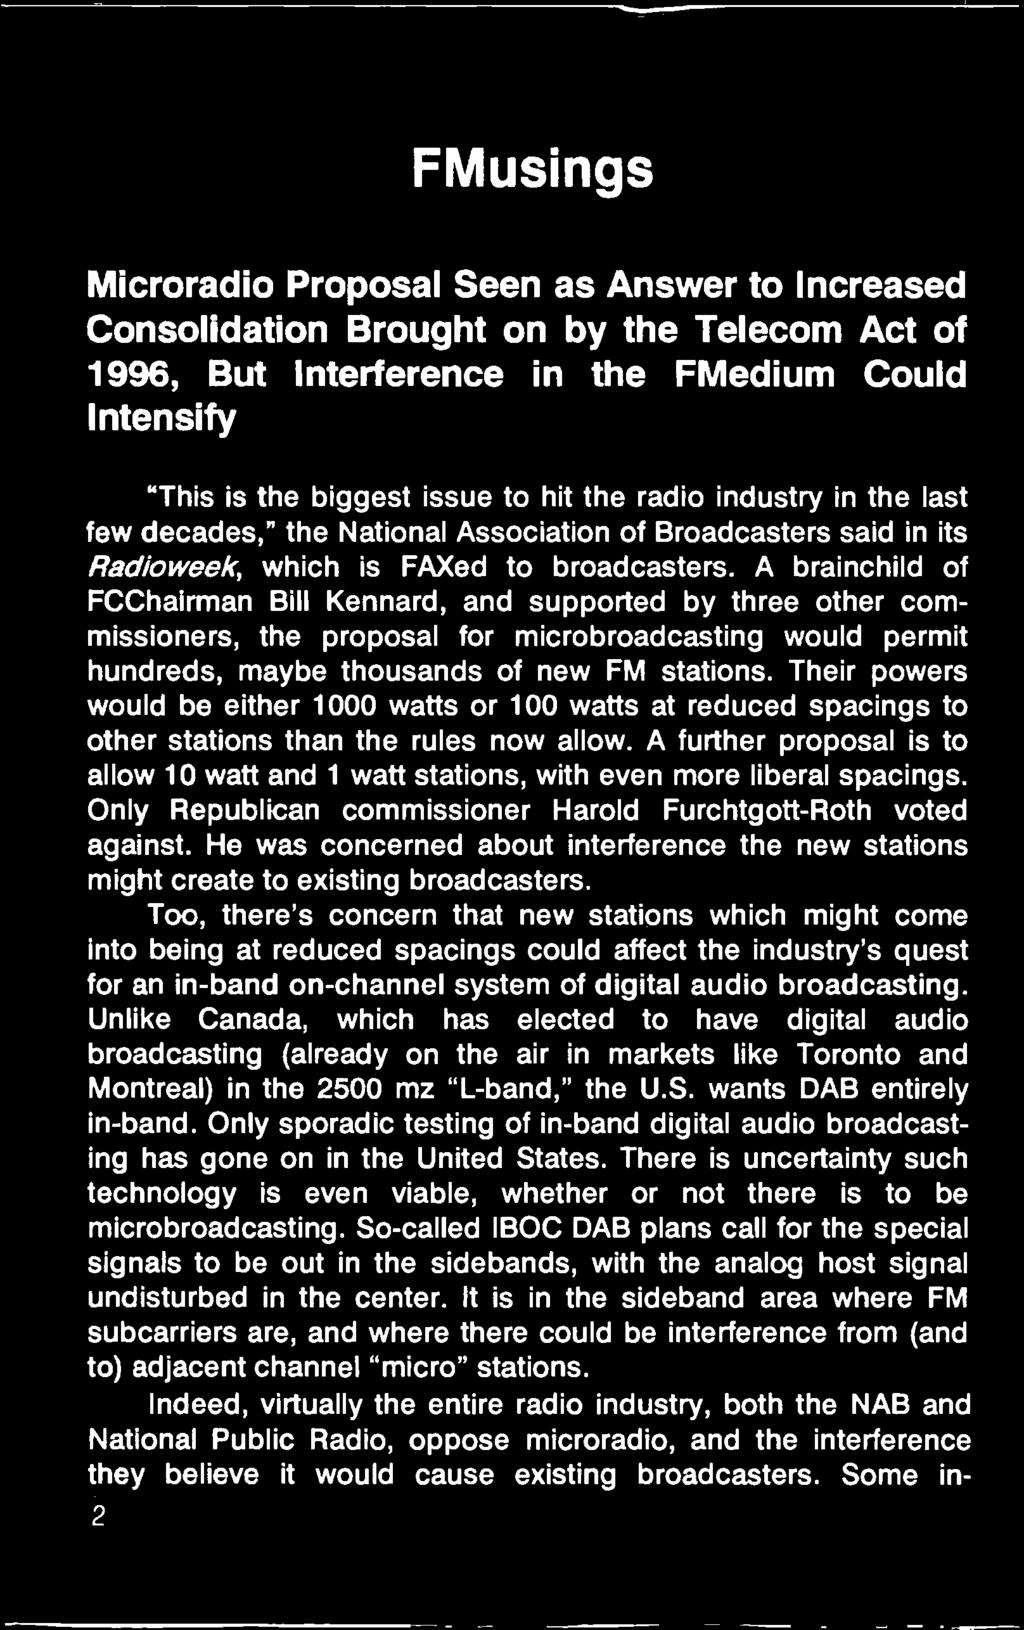 A brainchild of FCChairman Bill Kennard, and supported by three other commissioners, the proposal for microbroadcasting would permit hundreds, maybe thousands of new FM stations.